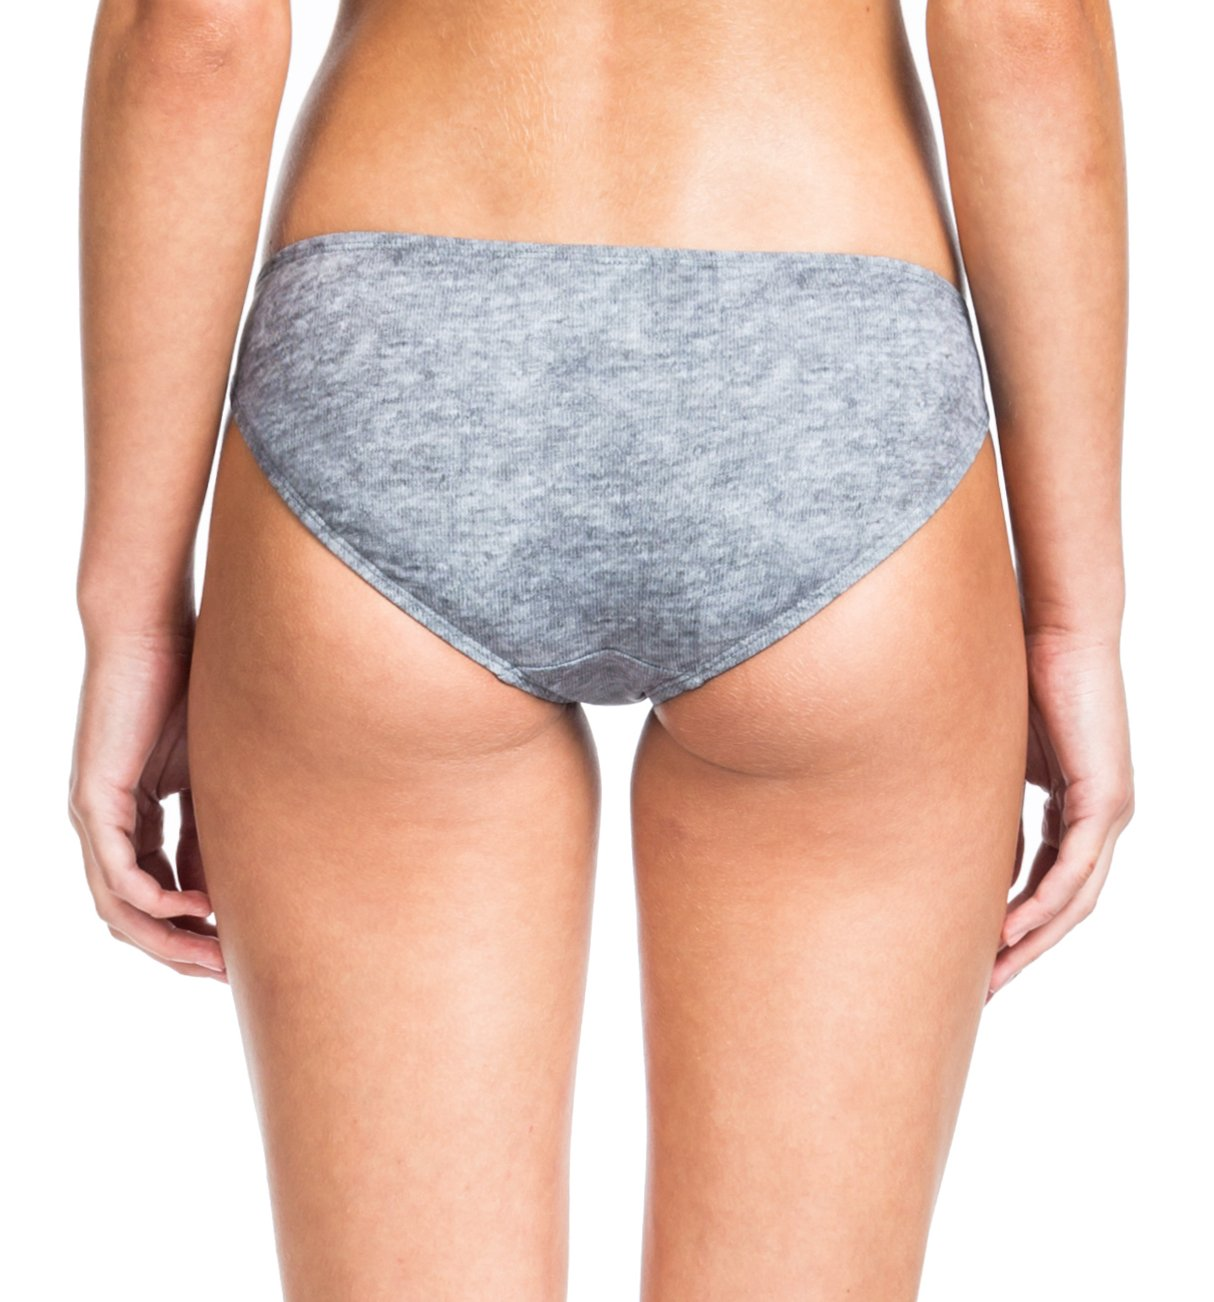 NAOMI BOTTOM - GREY HEATHER - Beth Richards Canada